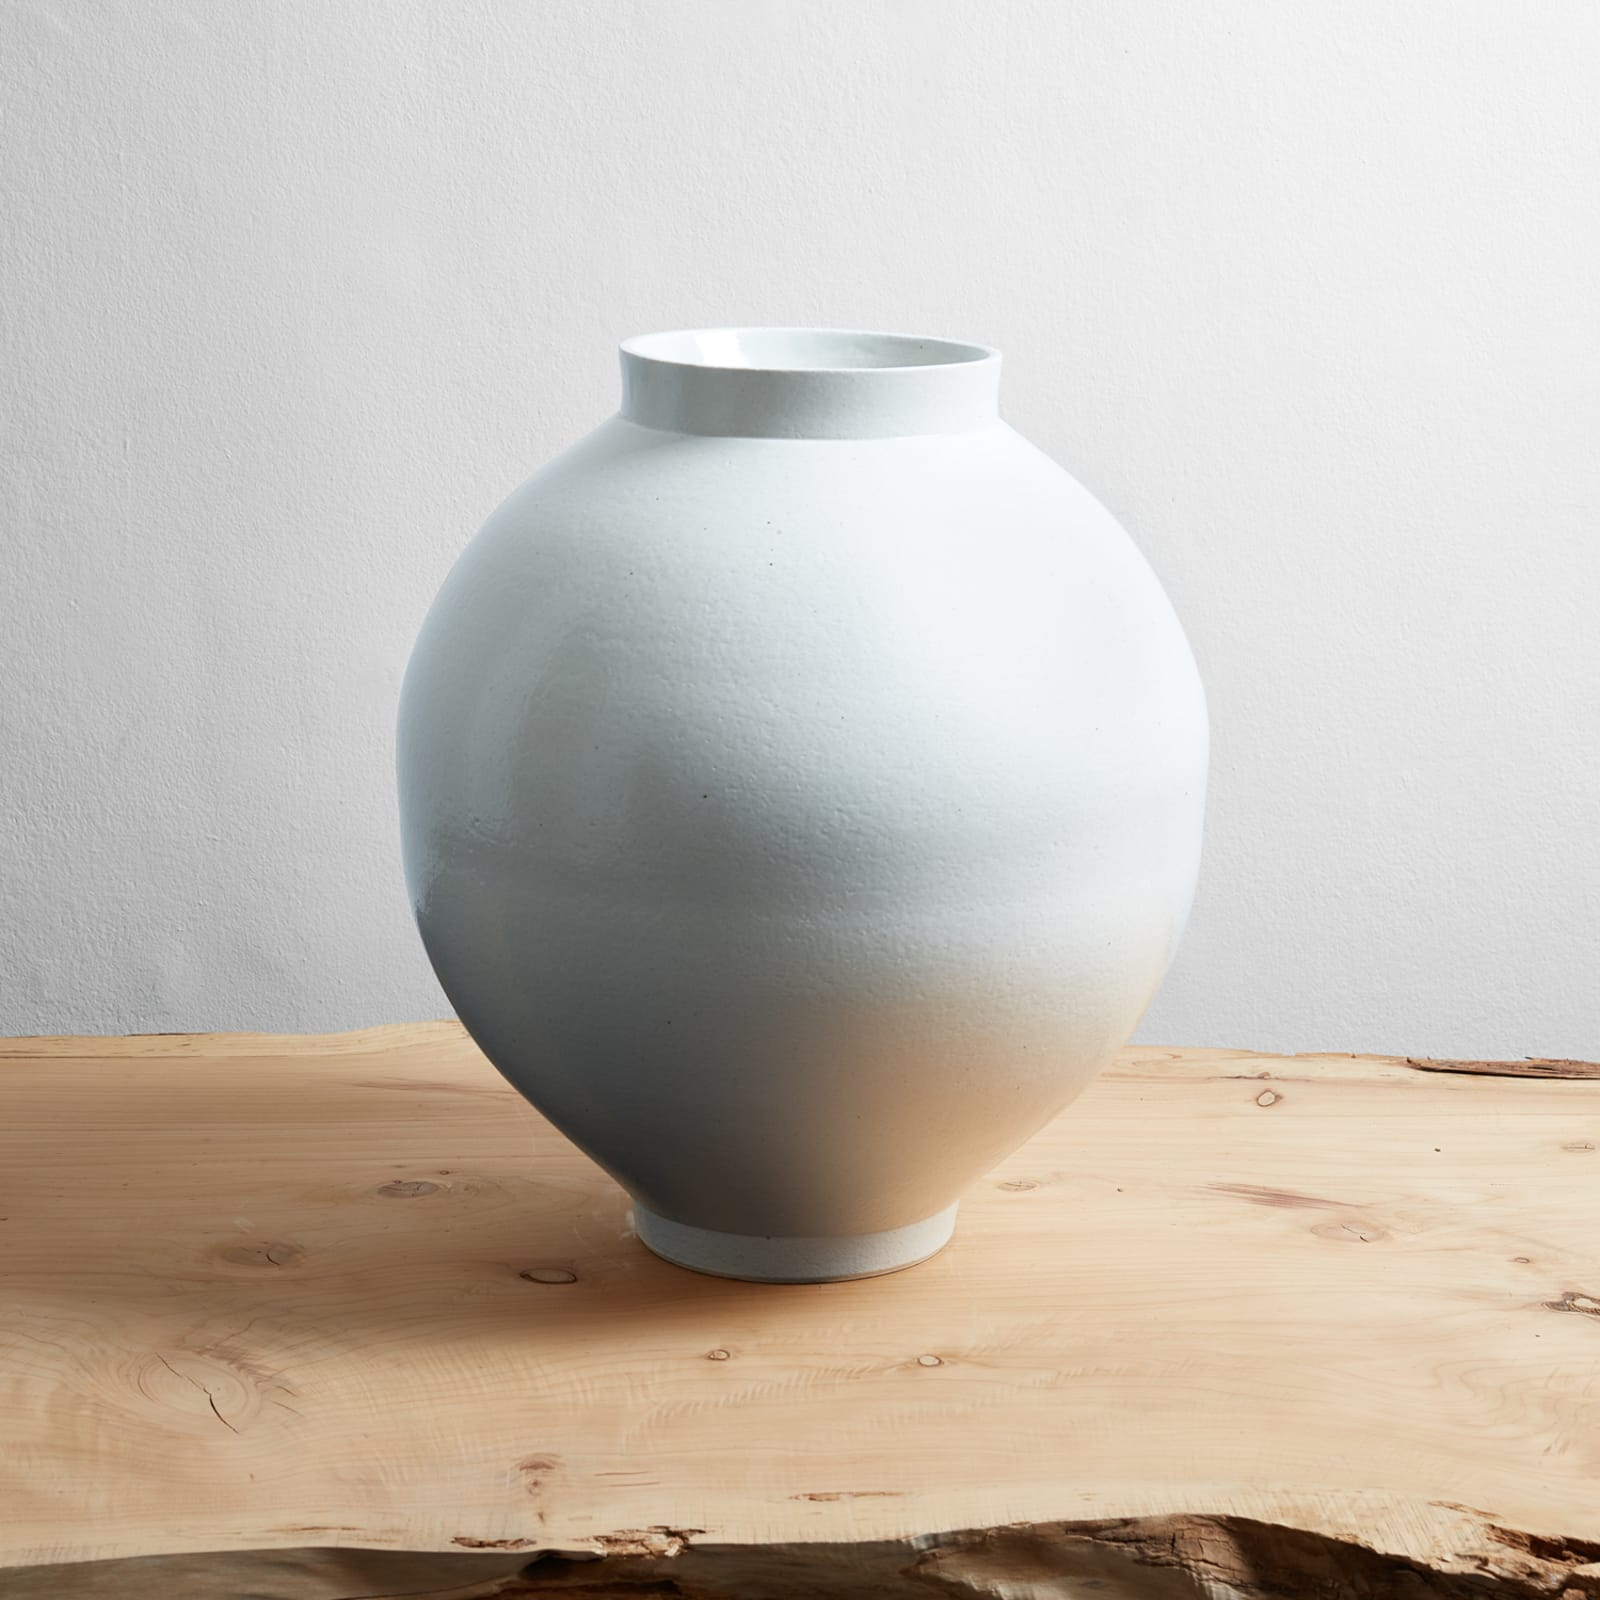 Kim Dong Jun  Moon Jar, 2017  White porcelain  49 x 45 x 45 cm